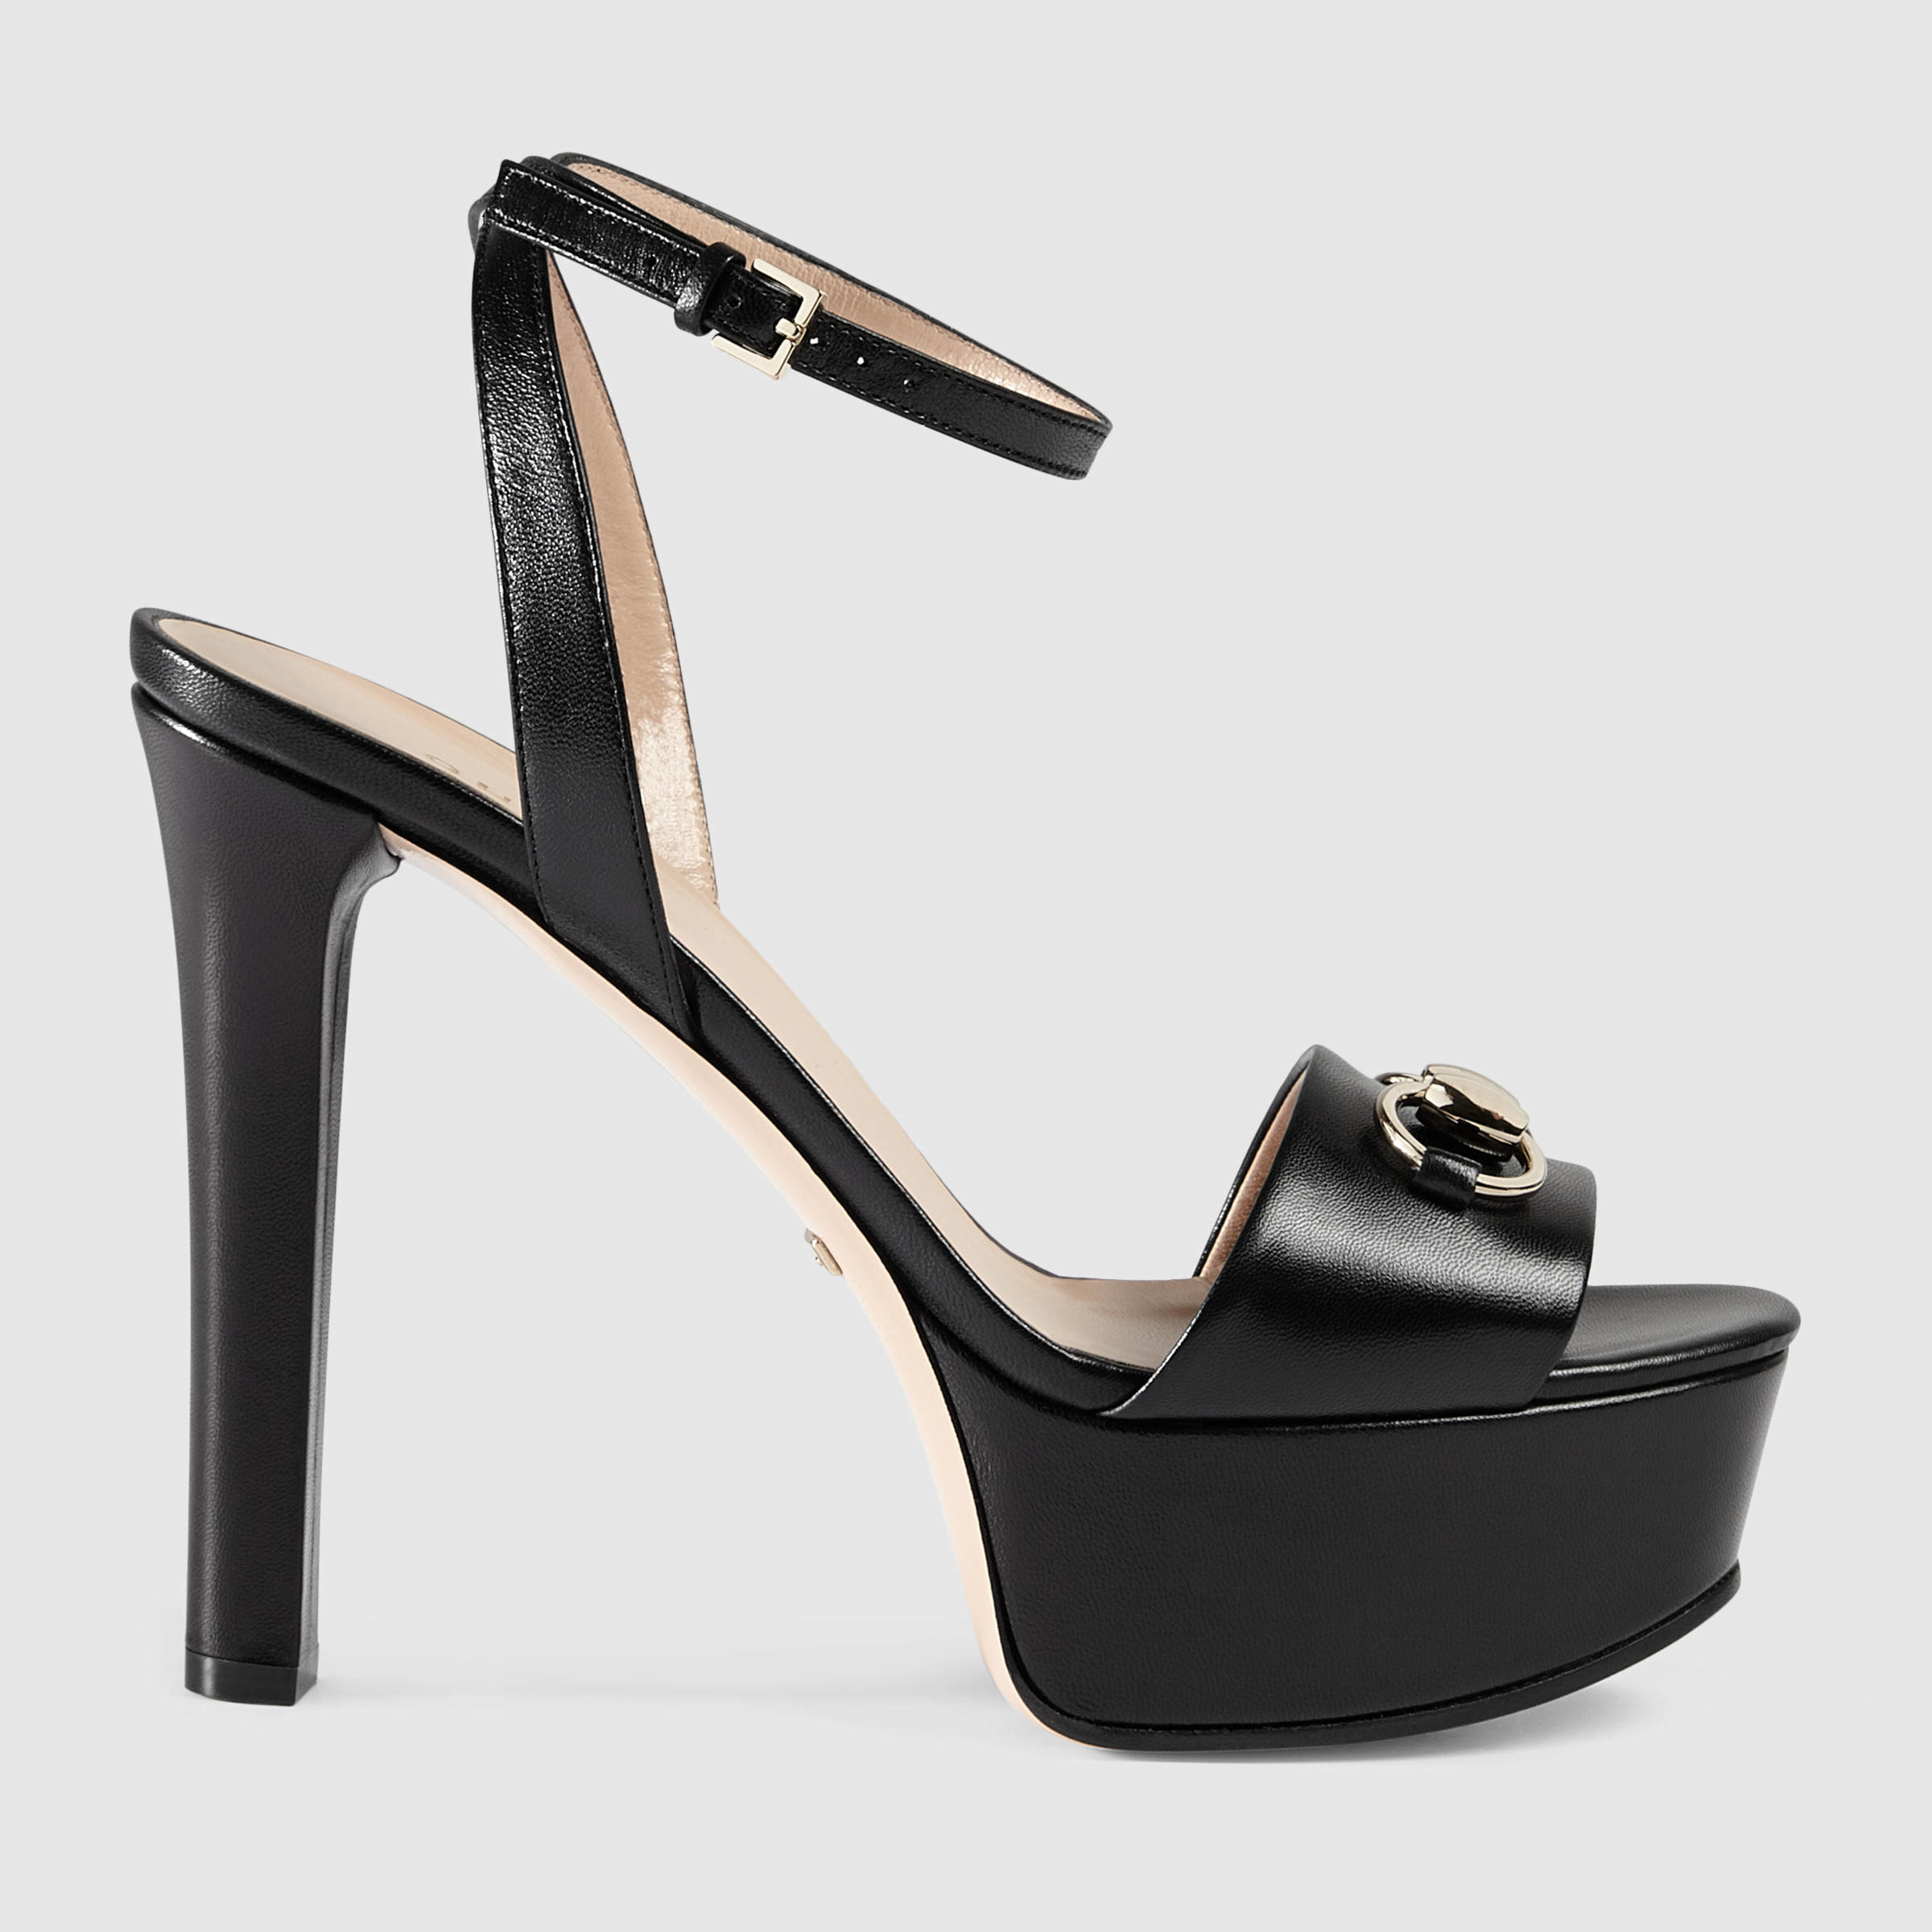 468b2ad6243 Lyst - Gucci Leather Platform Sandal in Black